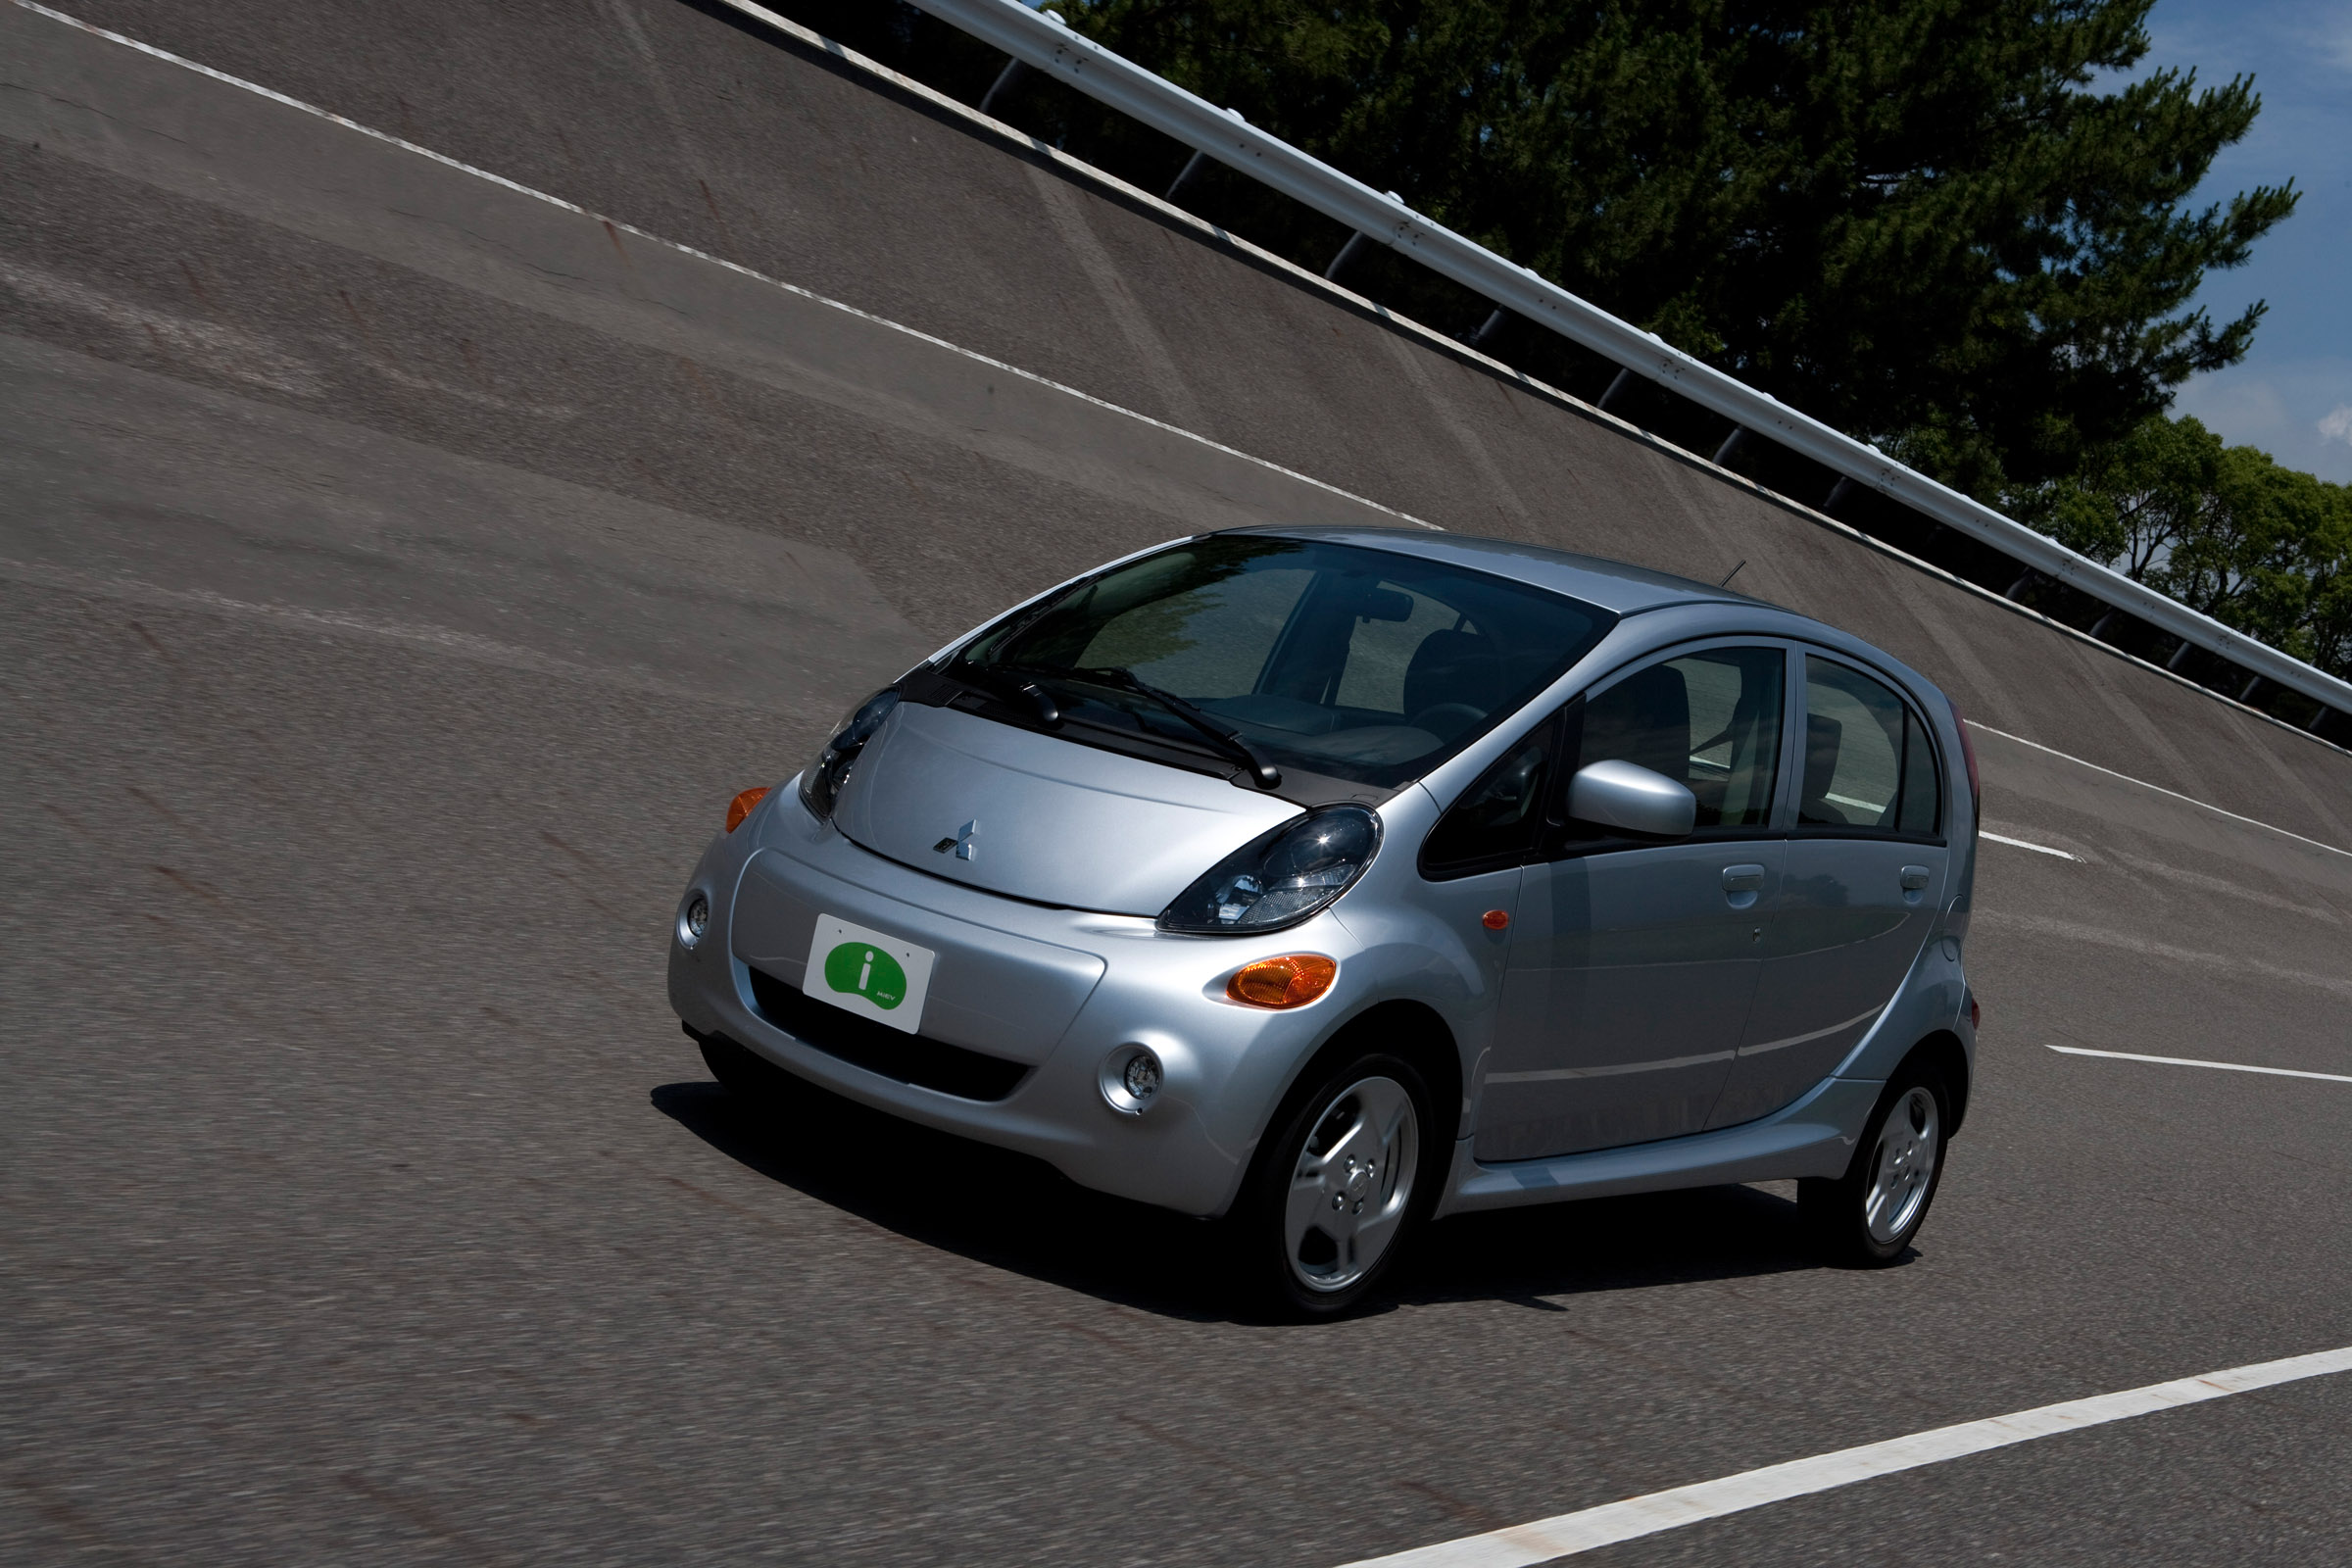 jn eng mitsubishi to in used zoom estrie hover mievvvv page detail sale miev i vehicle auto for